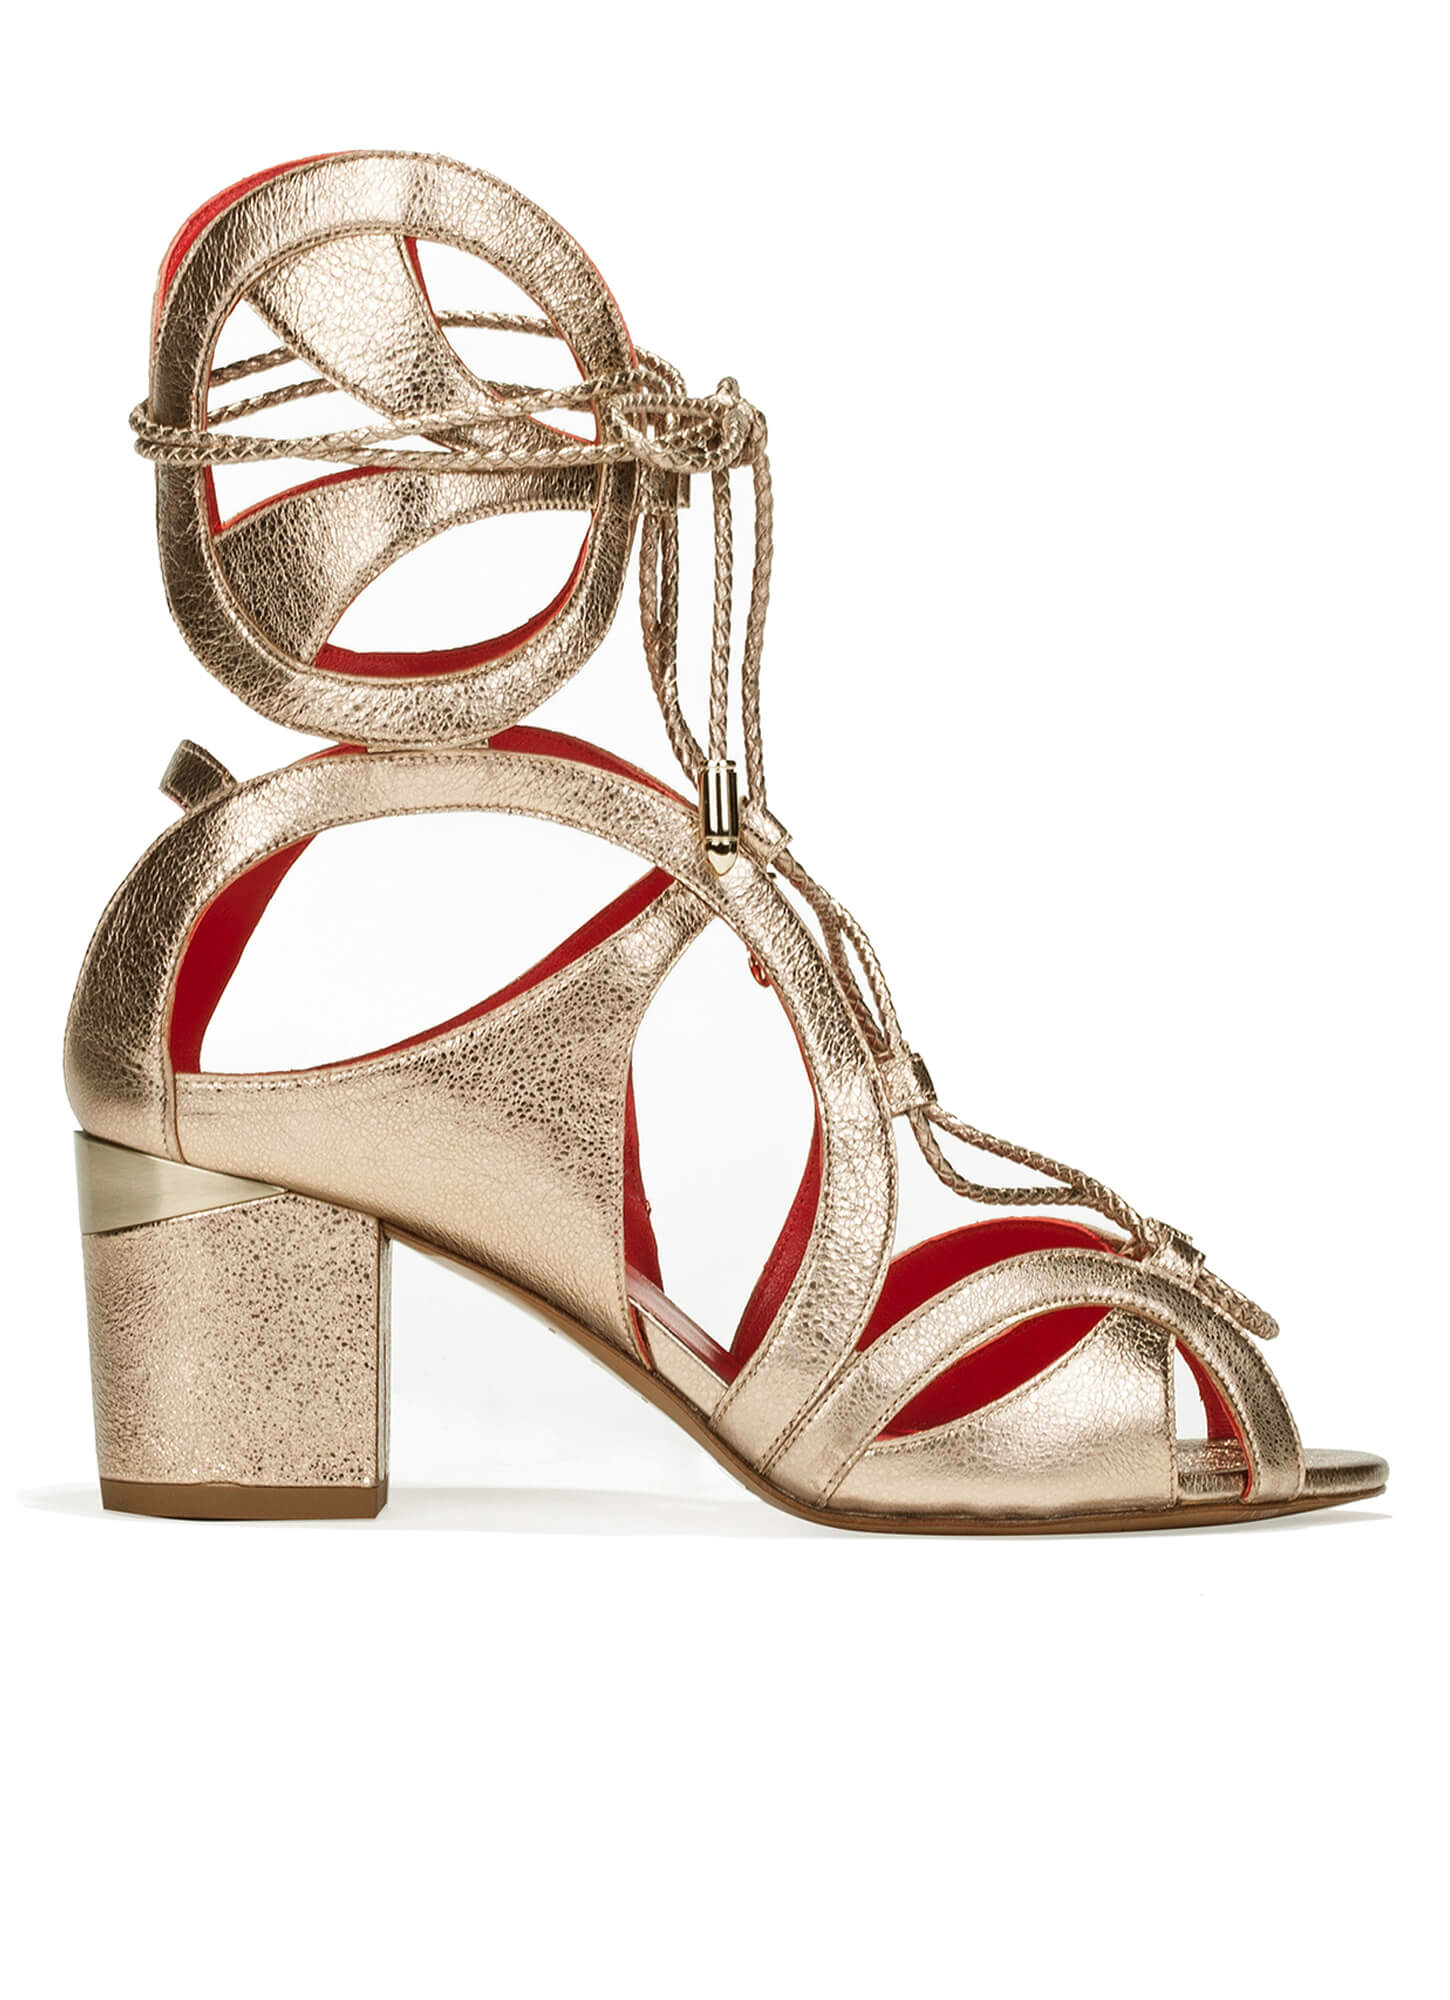 3af278e0fe5 Cutout sandals in metallic leather - shoe store Pura López . PURA LOPEZ